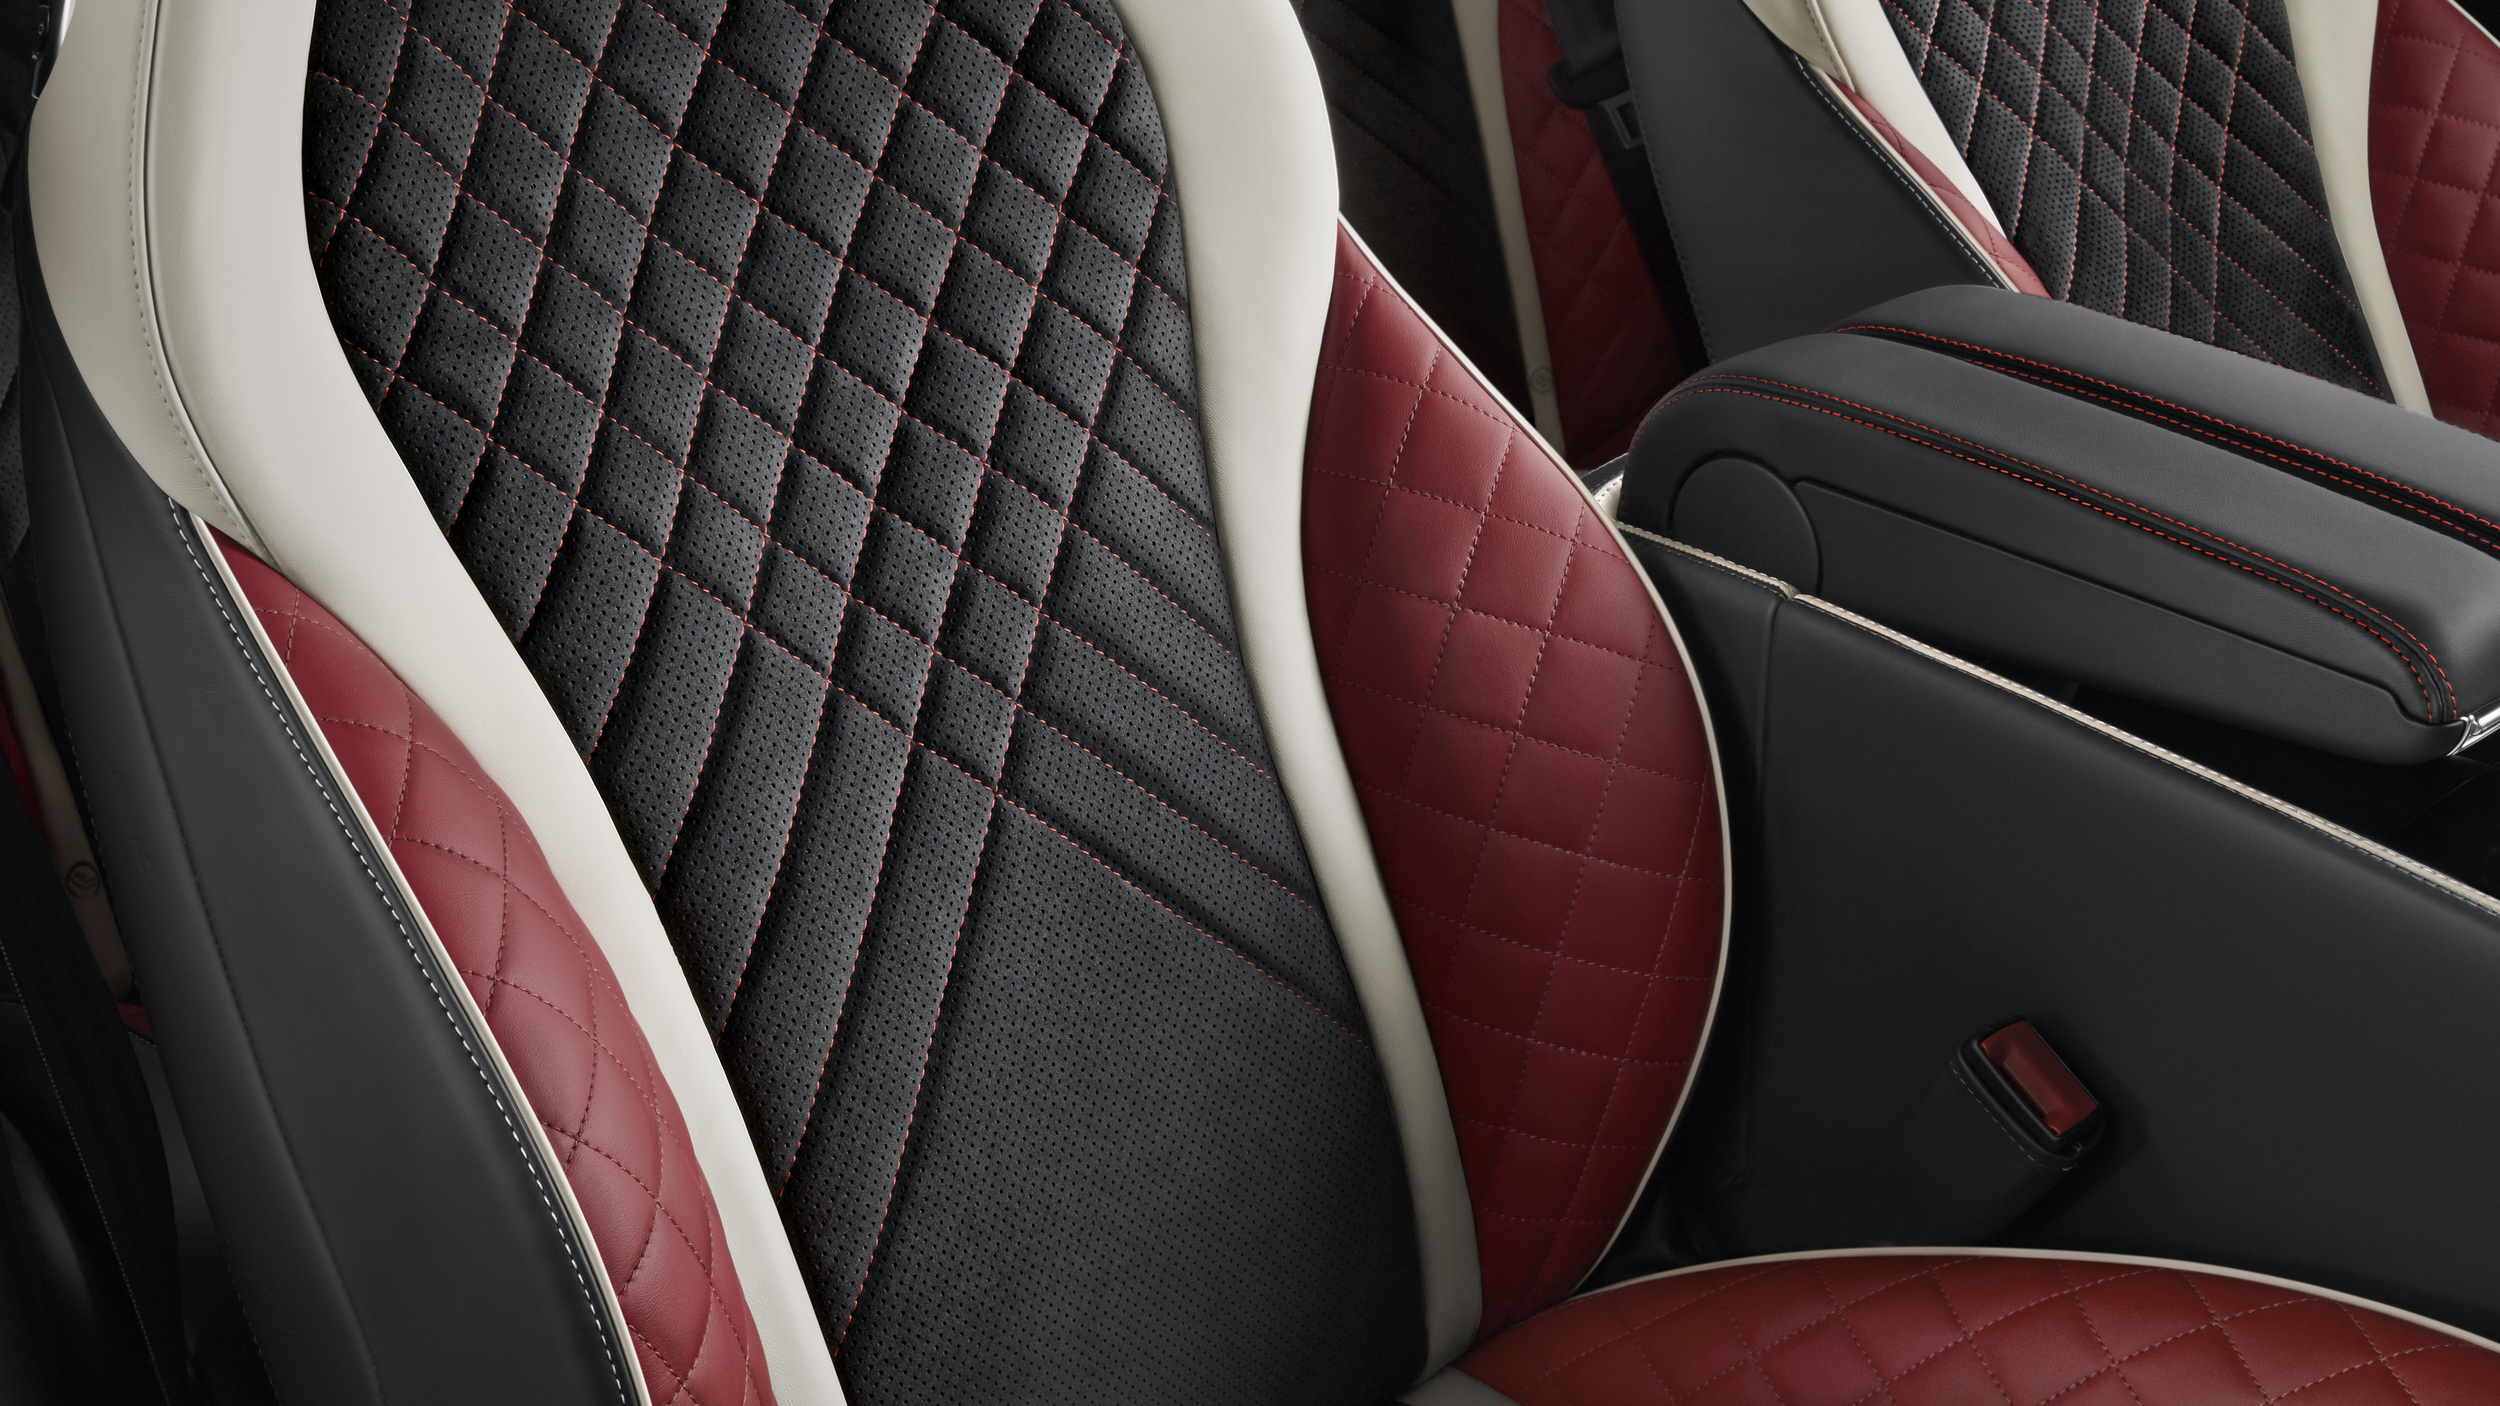 supersports-seat-1